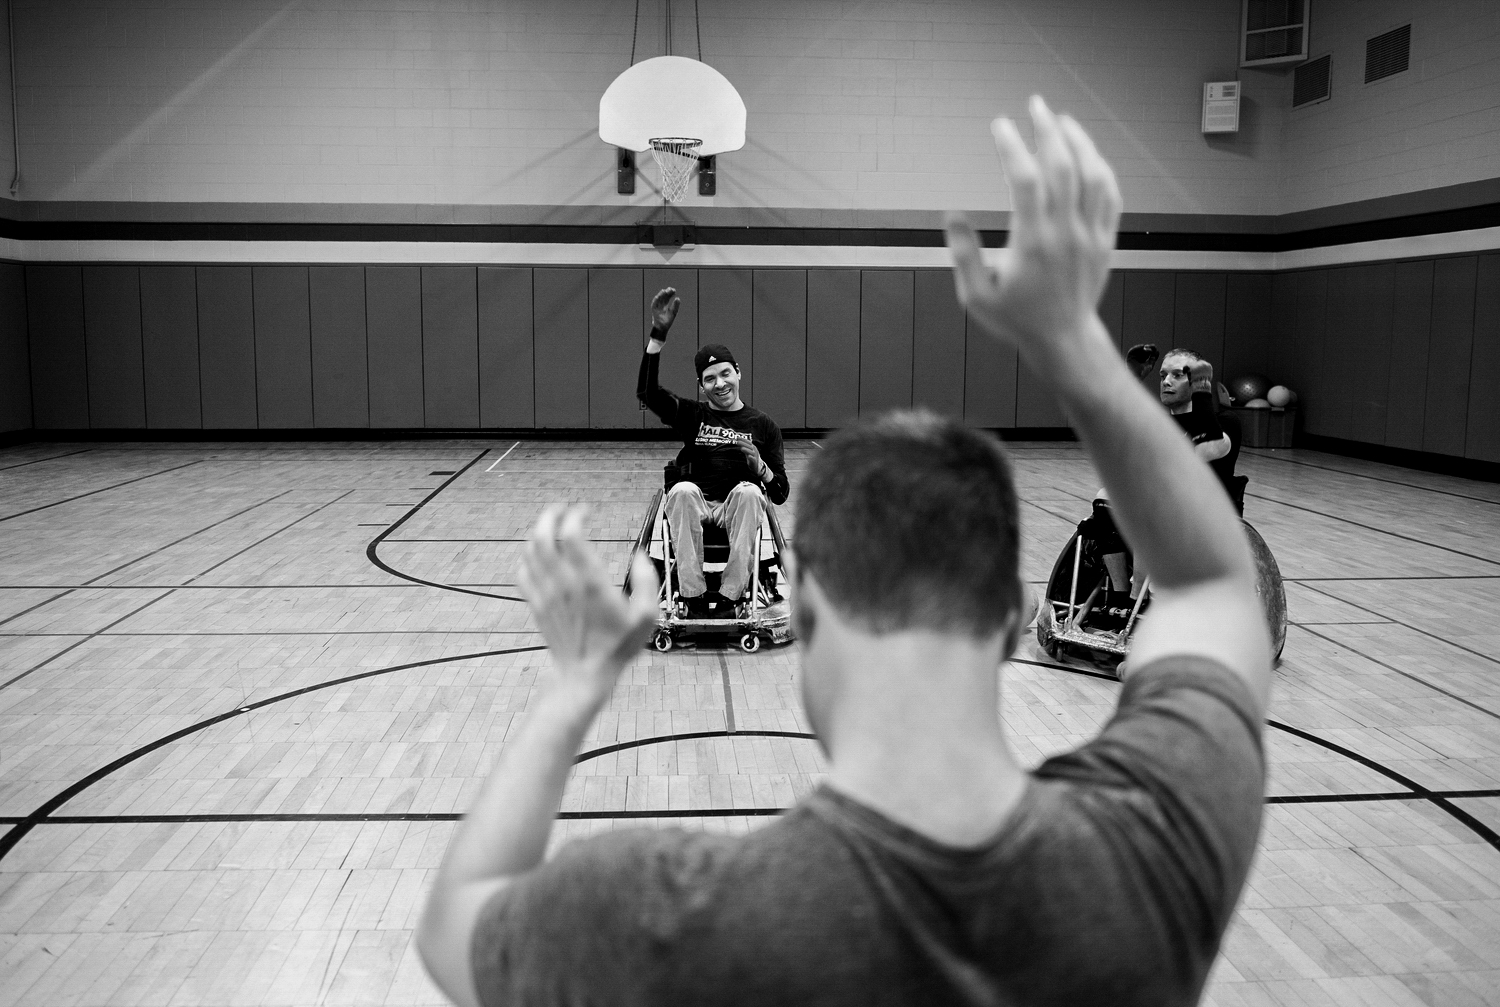 David warms up with his disability rugby team, the Western New York Wreckers during practice. The team is much more than a game for the teammates;it's a support system where everyone understands what it's like to be a quadriplegic.